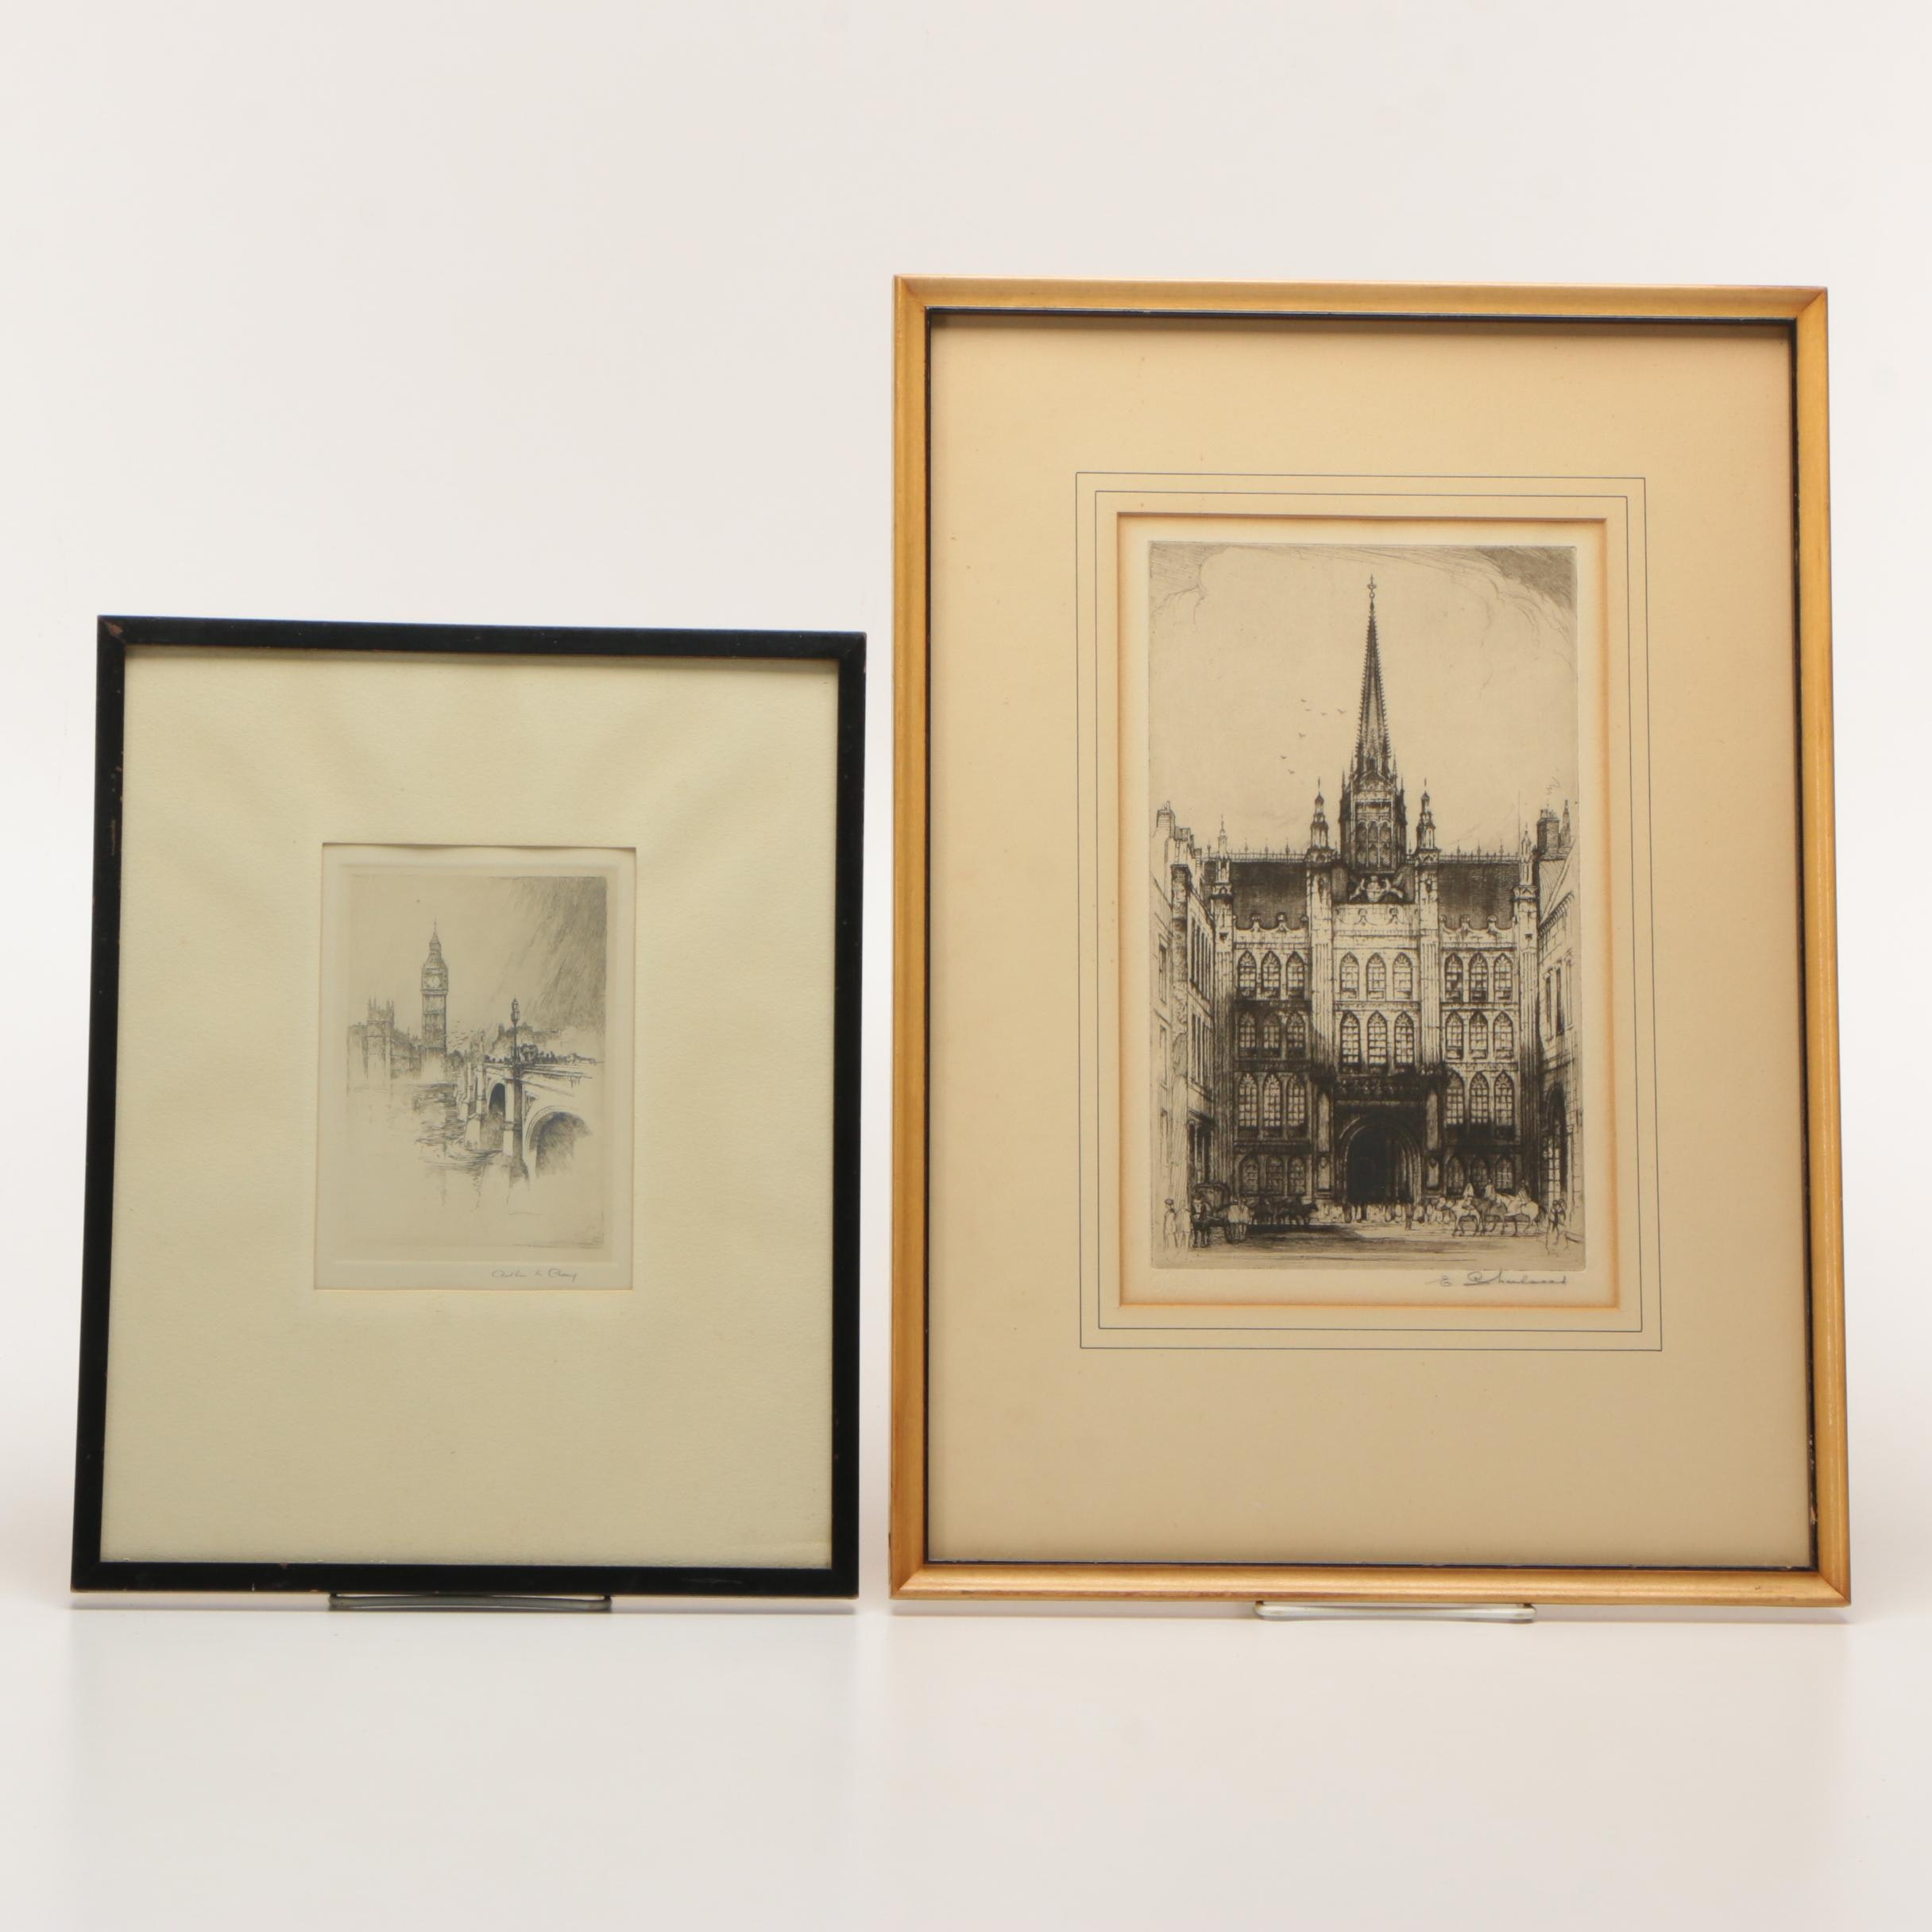 Edward Sharland and Arthur L. Cherry Drypoint Etchings of European Architecture